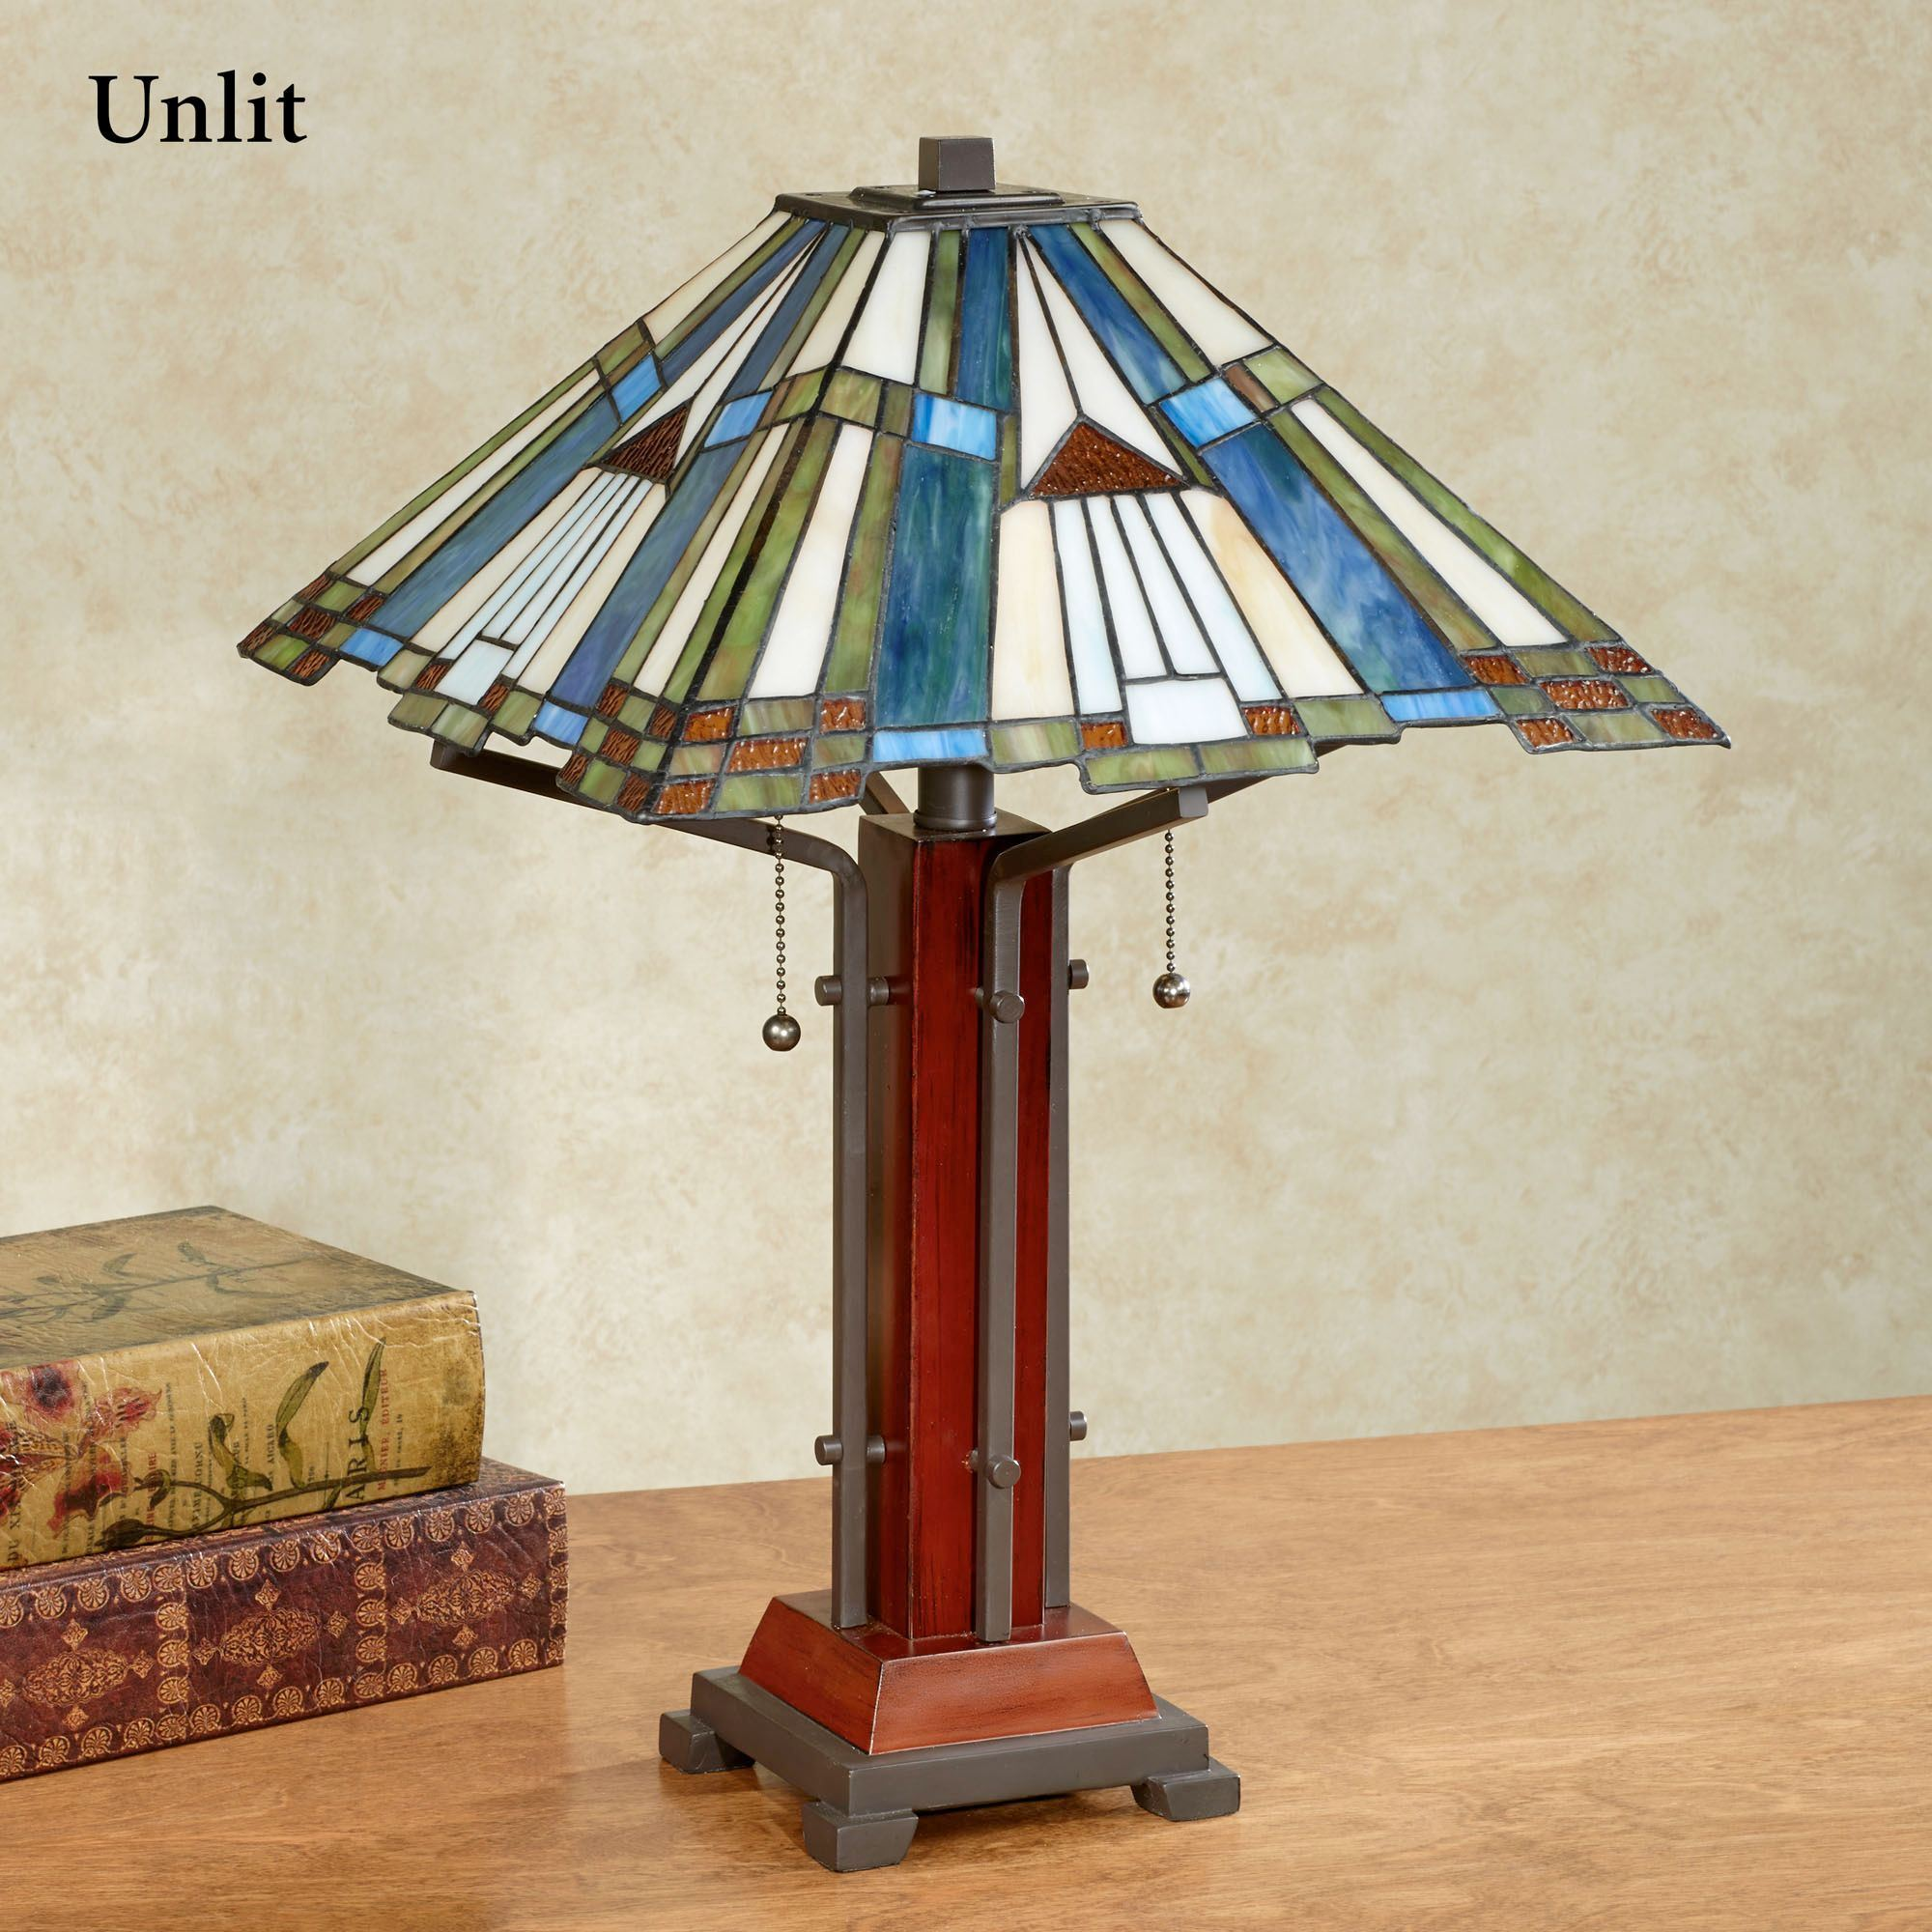 glass french design by lamps lamp table next previous daum market